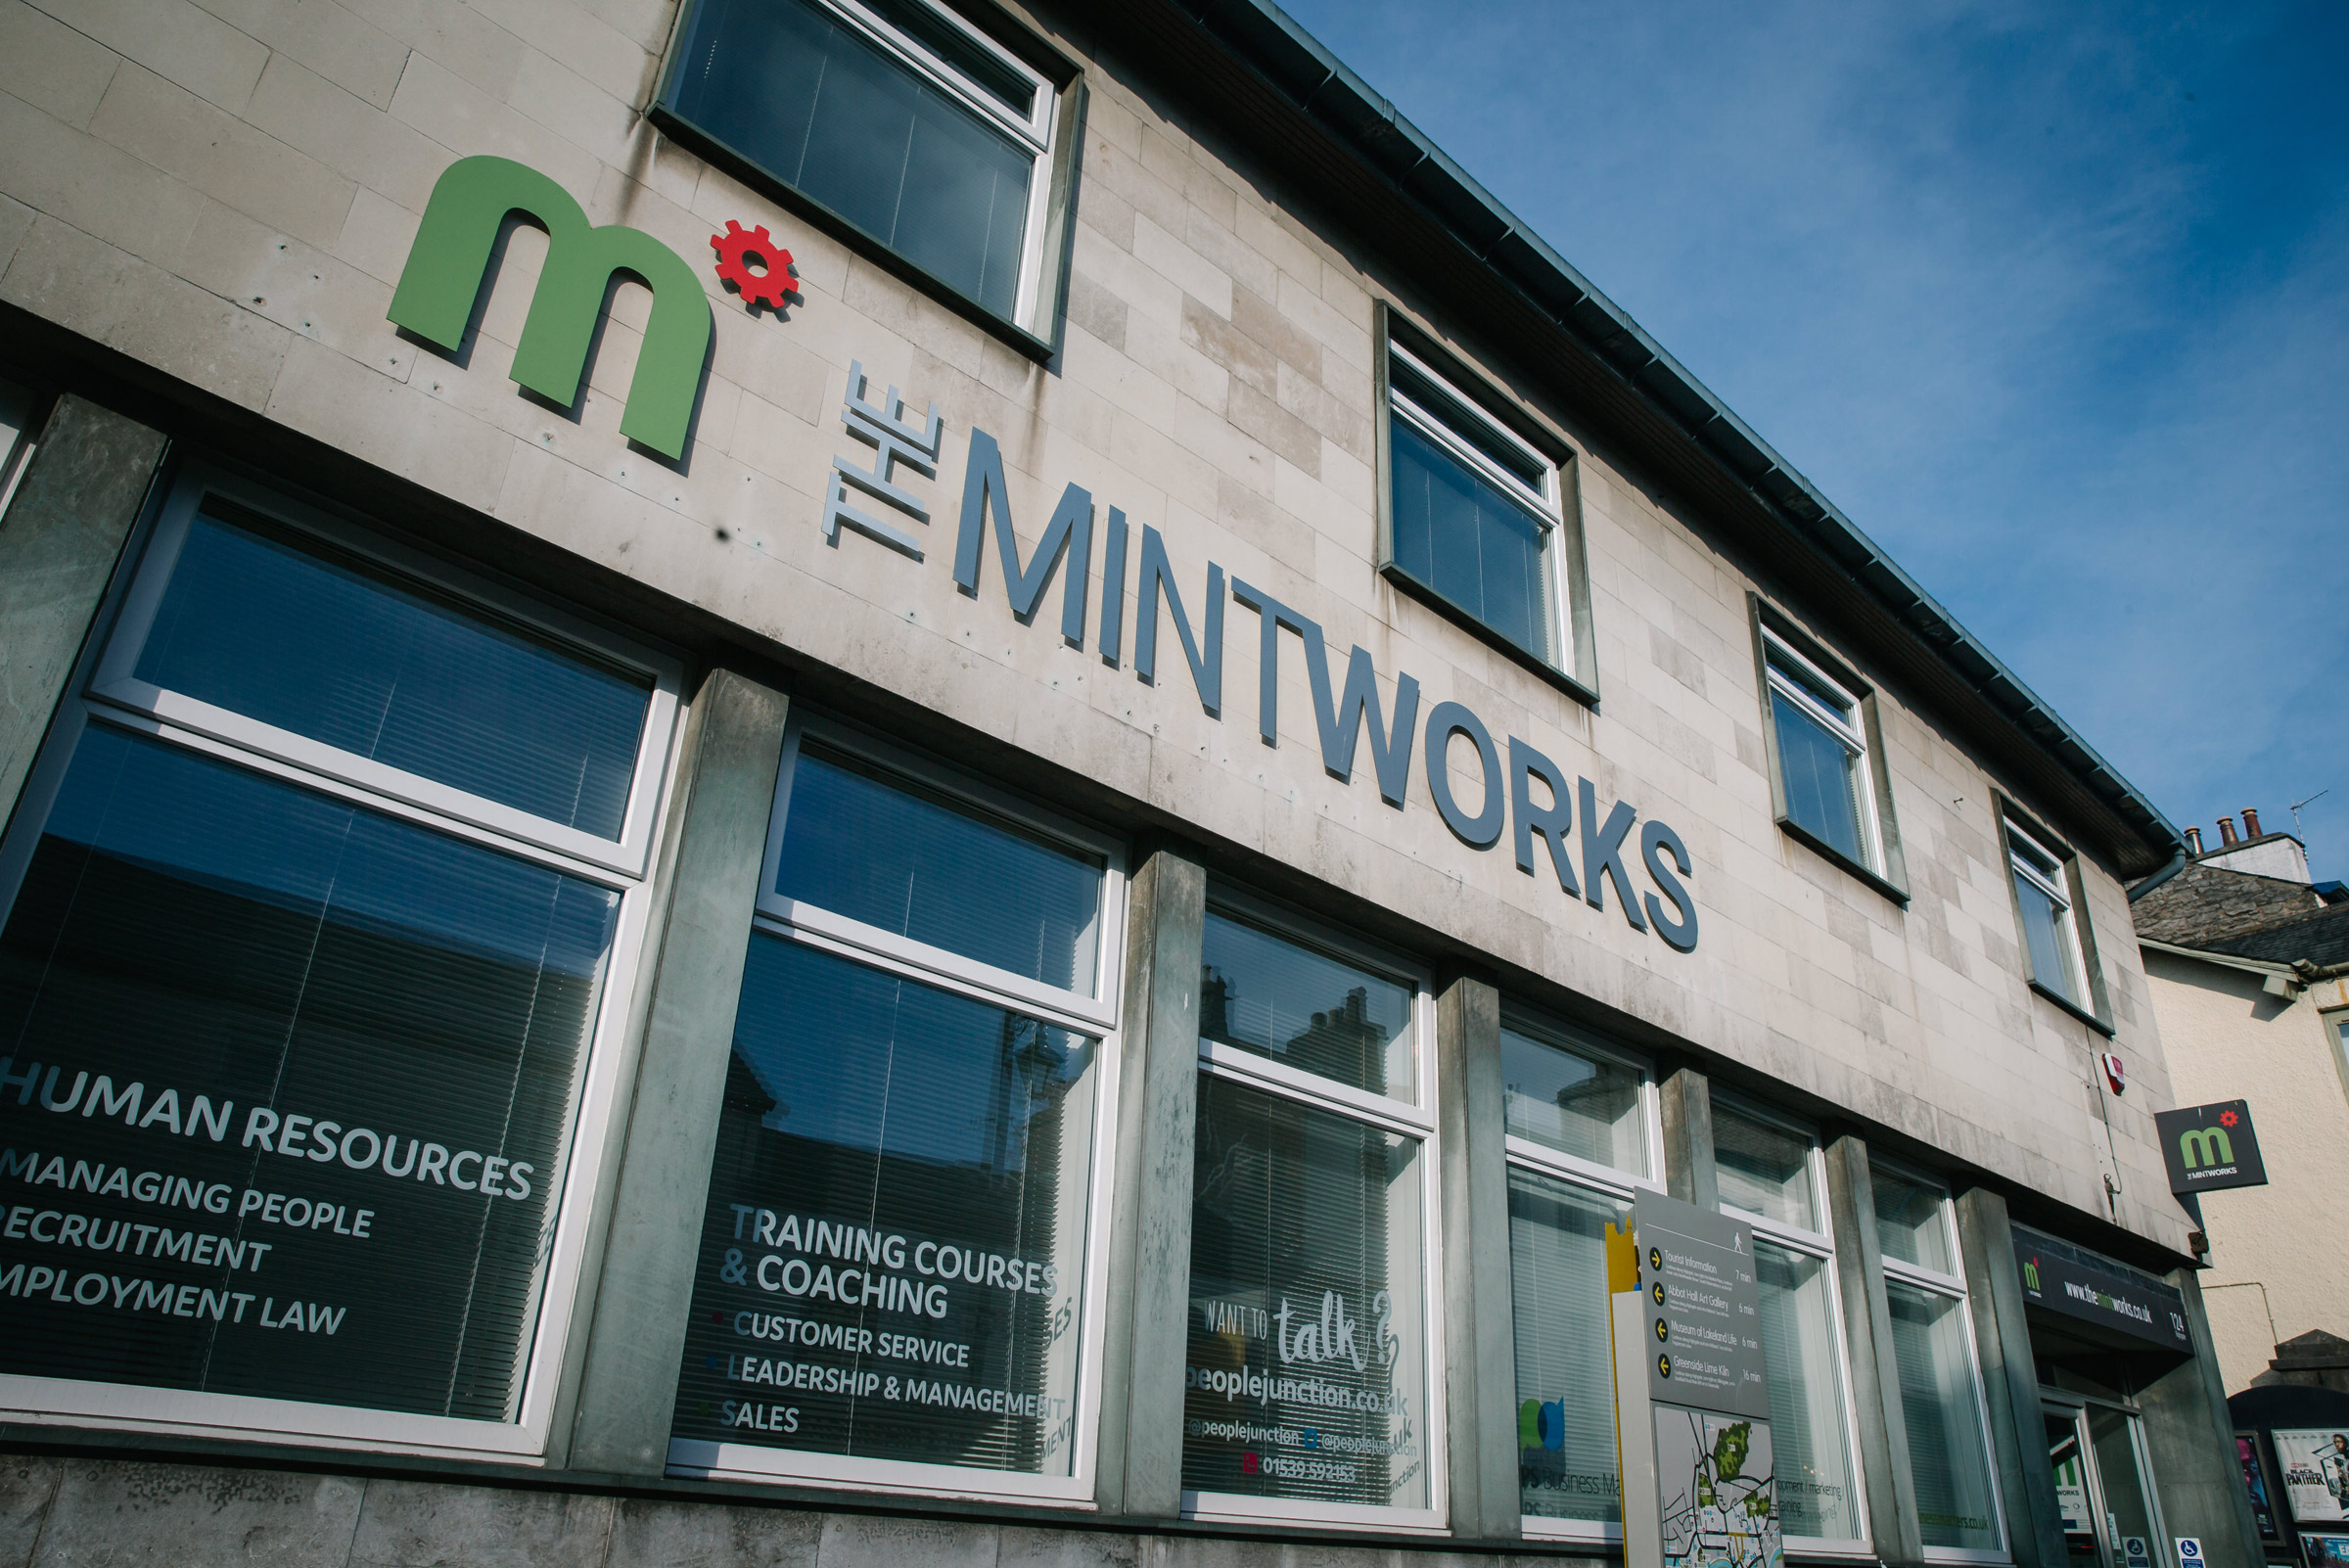 The MintWorks Kendal building exterior frontage from Highgate